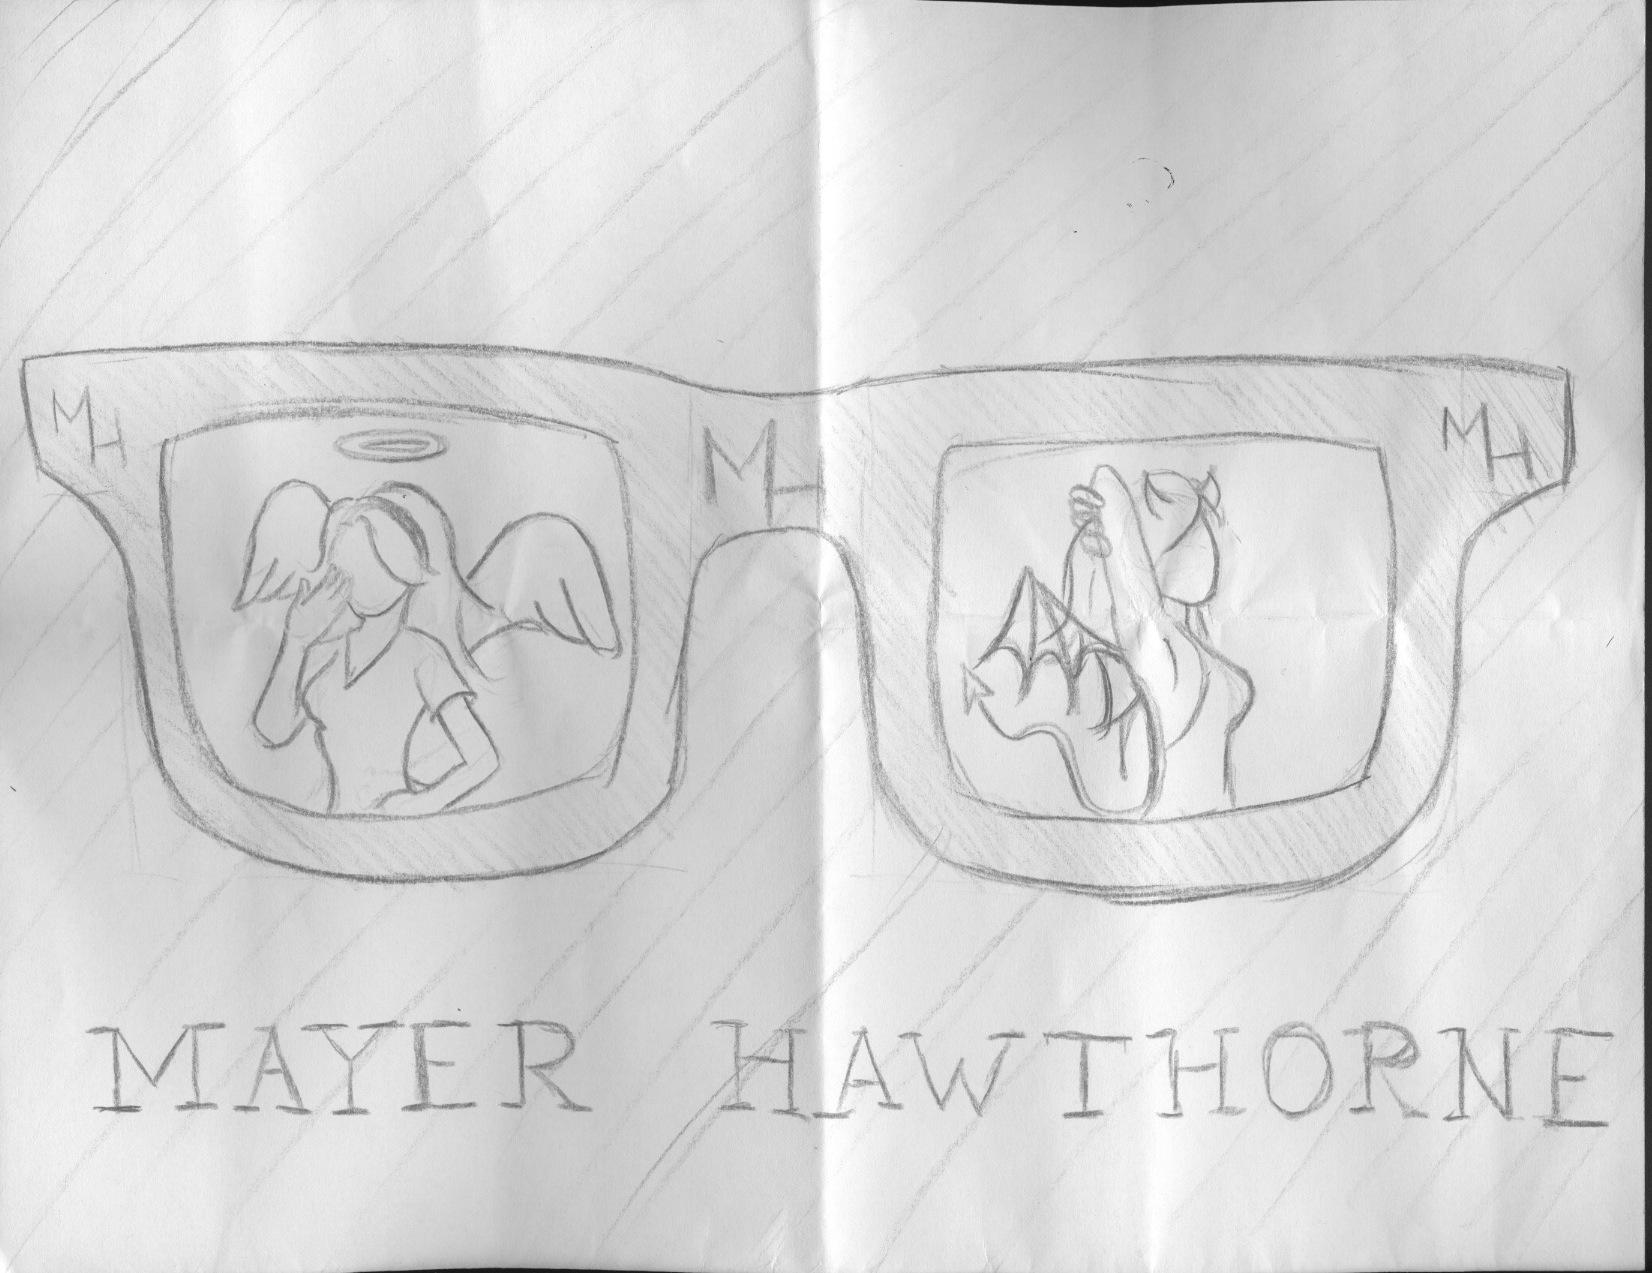 Mayer Hawthorne Poster Design - image 1 - student project